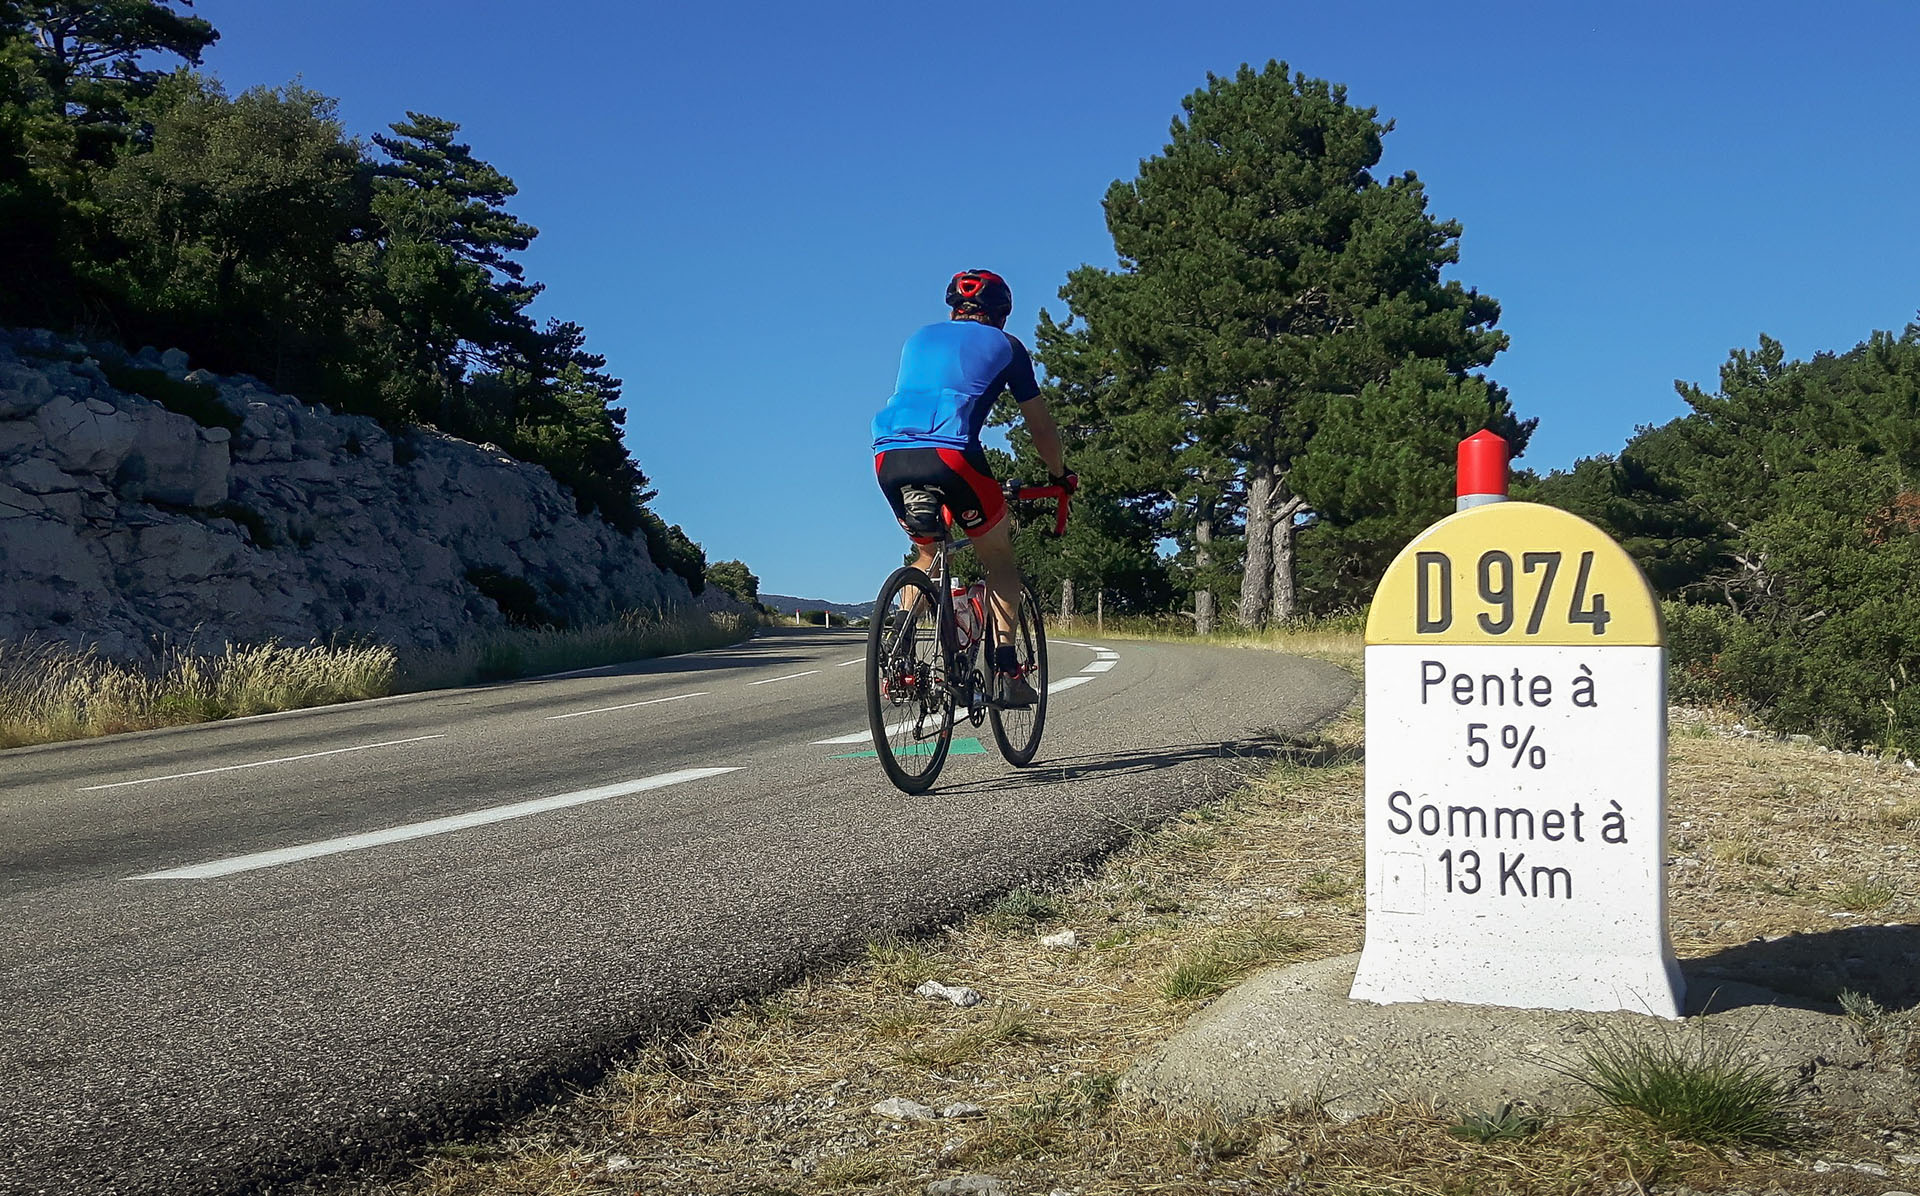 Training ride on the route from Malaucène to the summit of Mt Ventoux